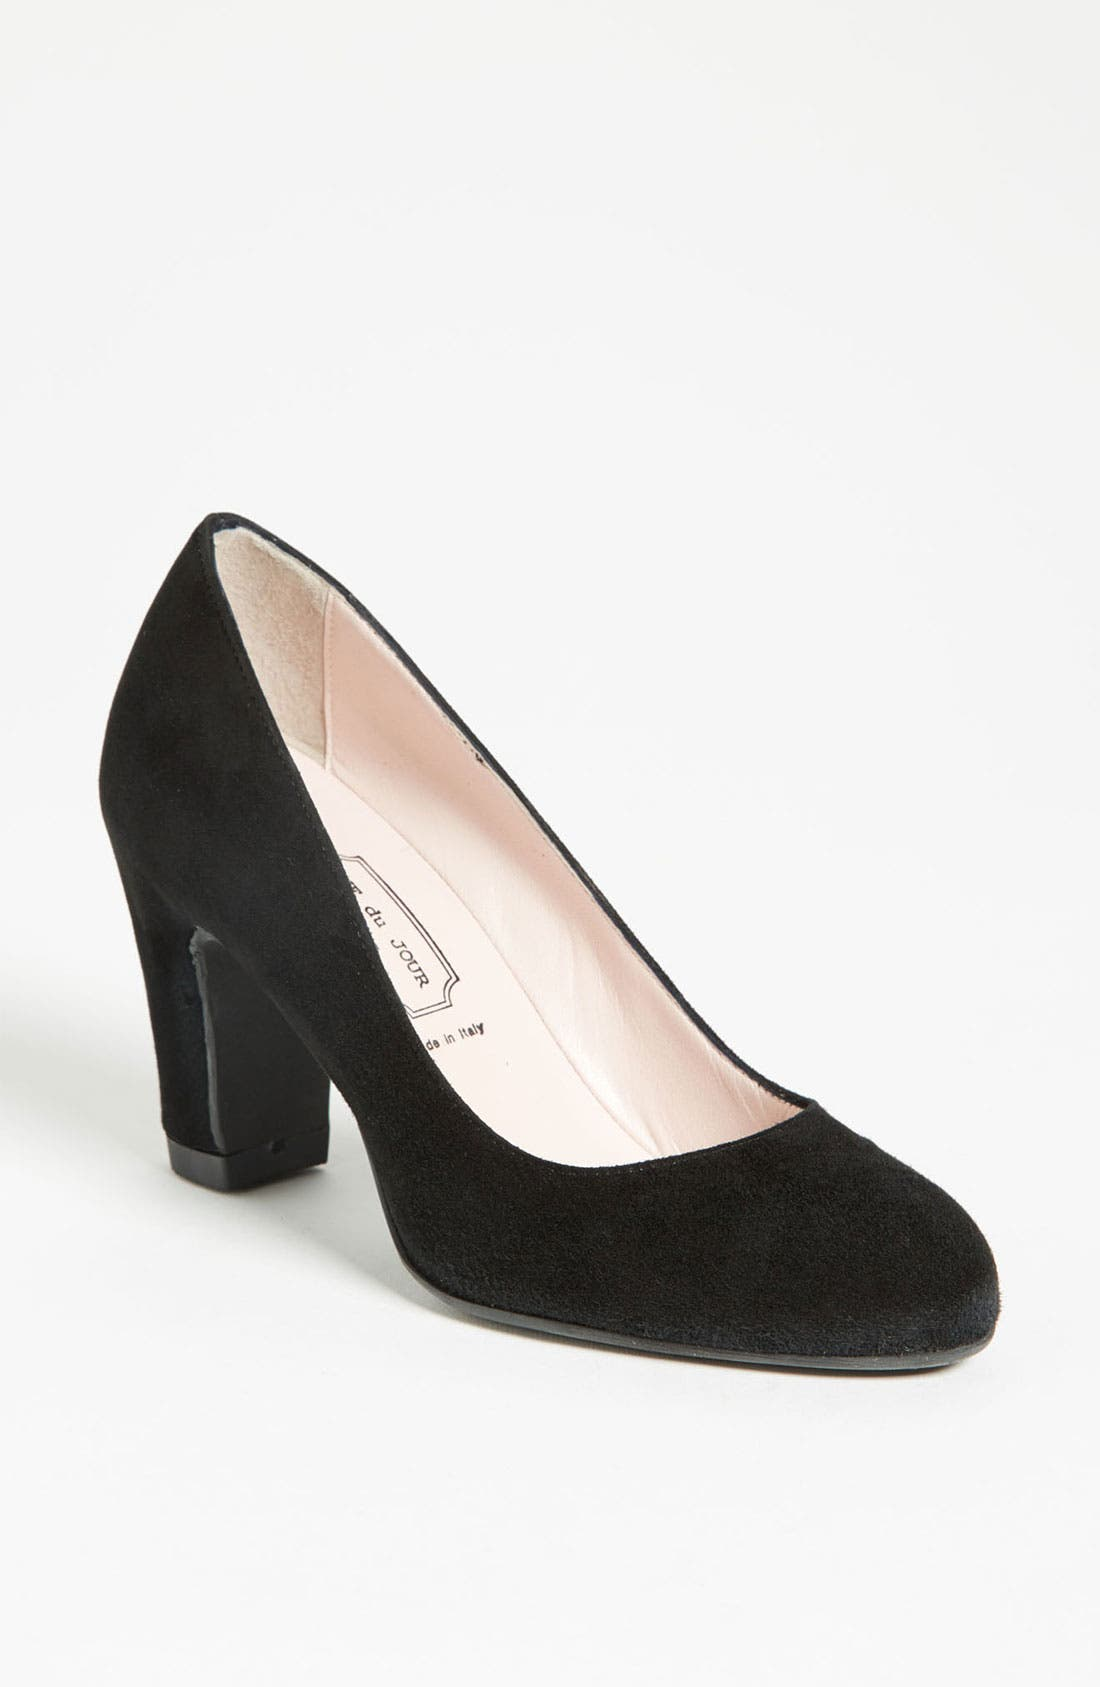 Alternate Image 1 Selected - Rue du Jour 'Eileen' Pump